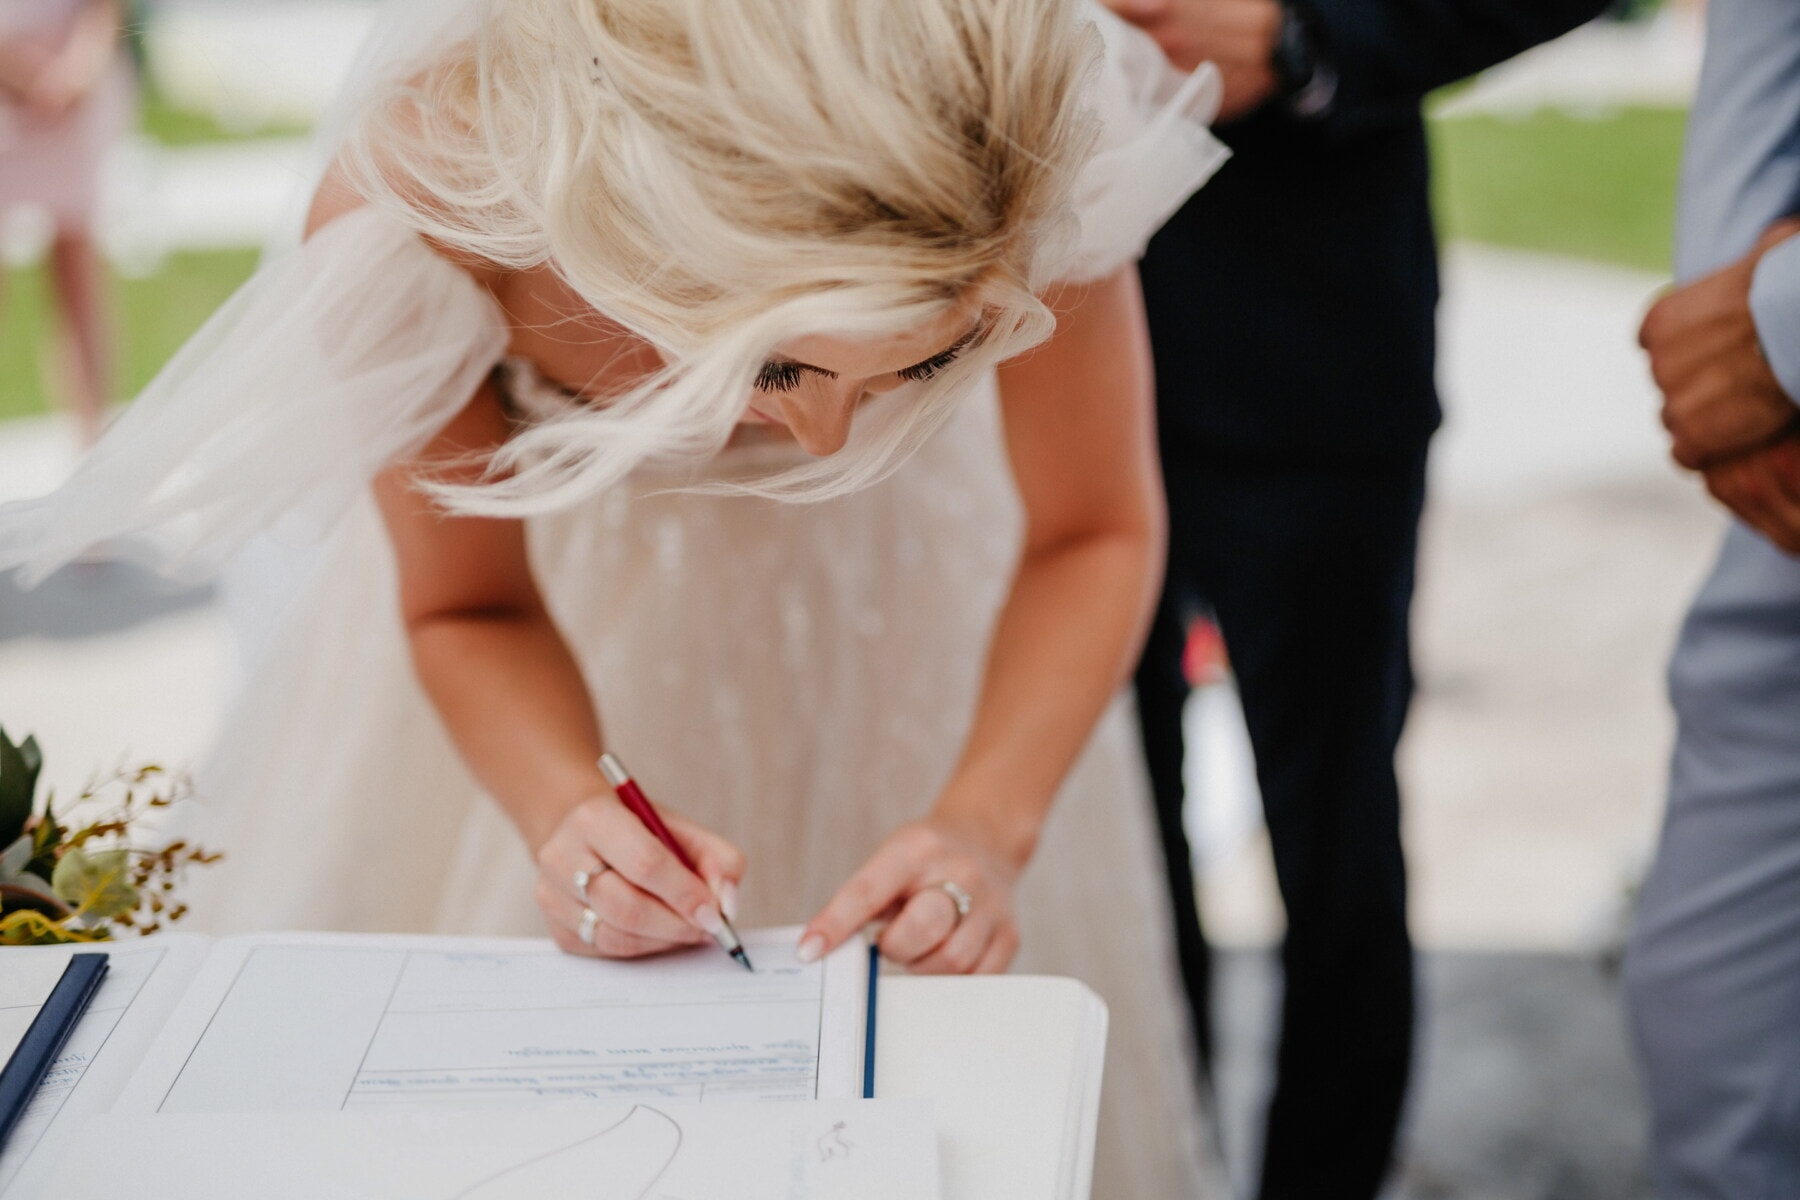 bride, sign, marriage, signature, pencil, book, woman, love, pretty, romance